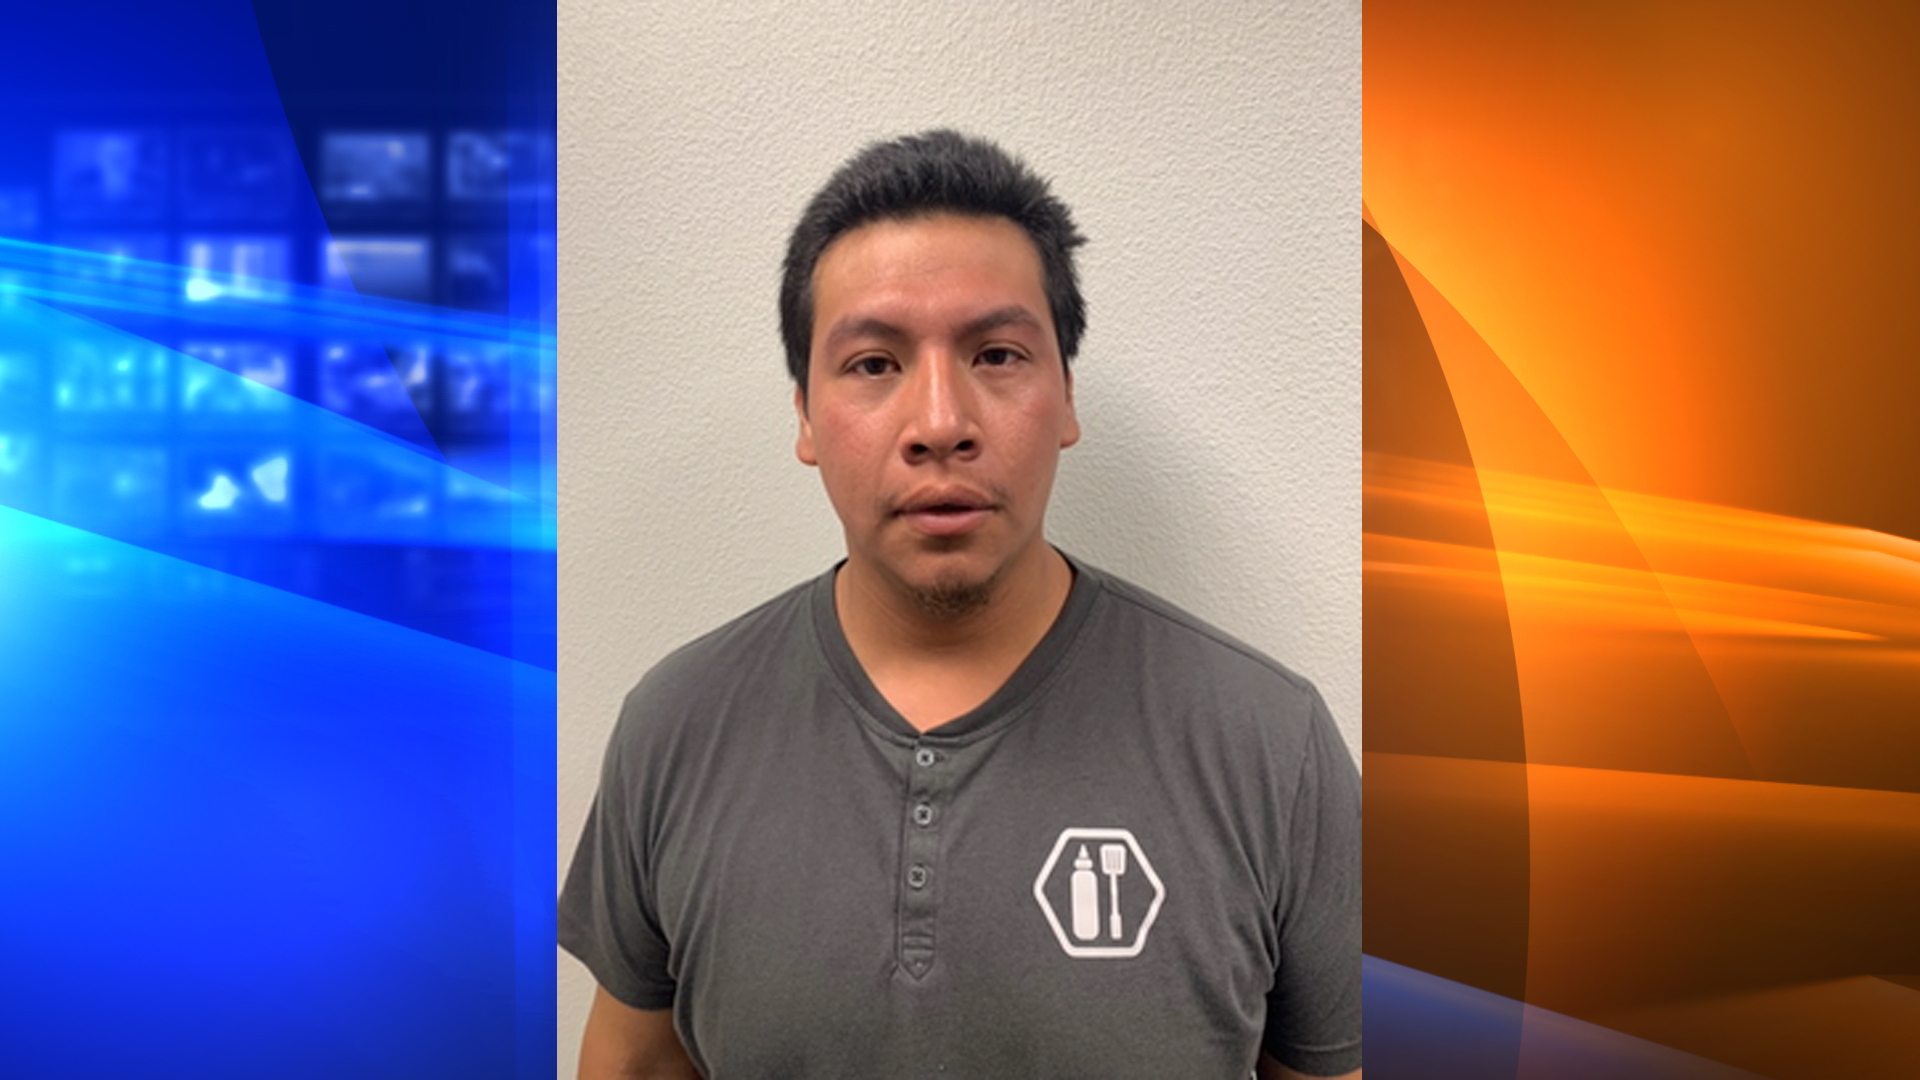 Fernando Valdovinos is shown in a photo released by the Tustin Police Department on May 4, 2020.